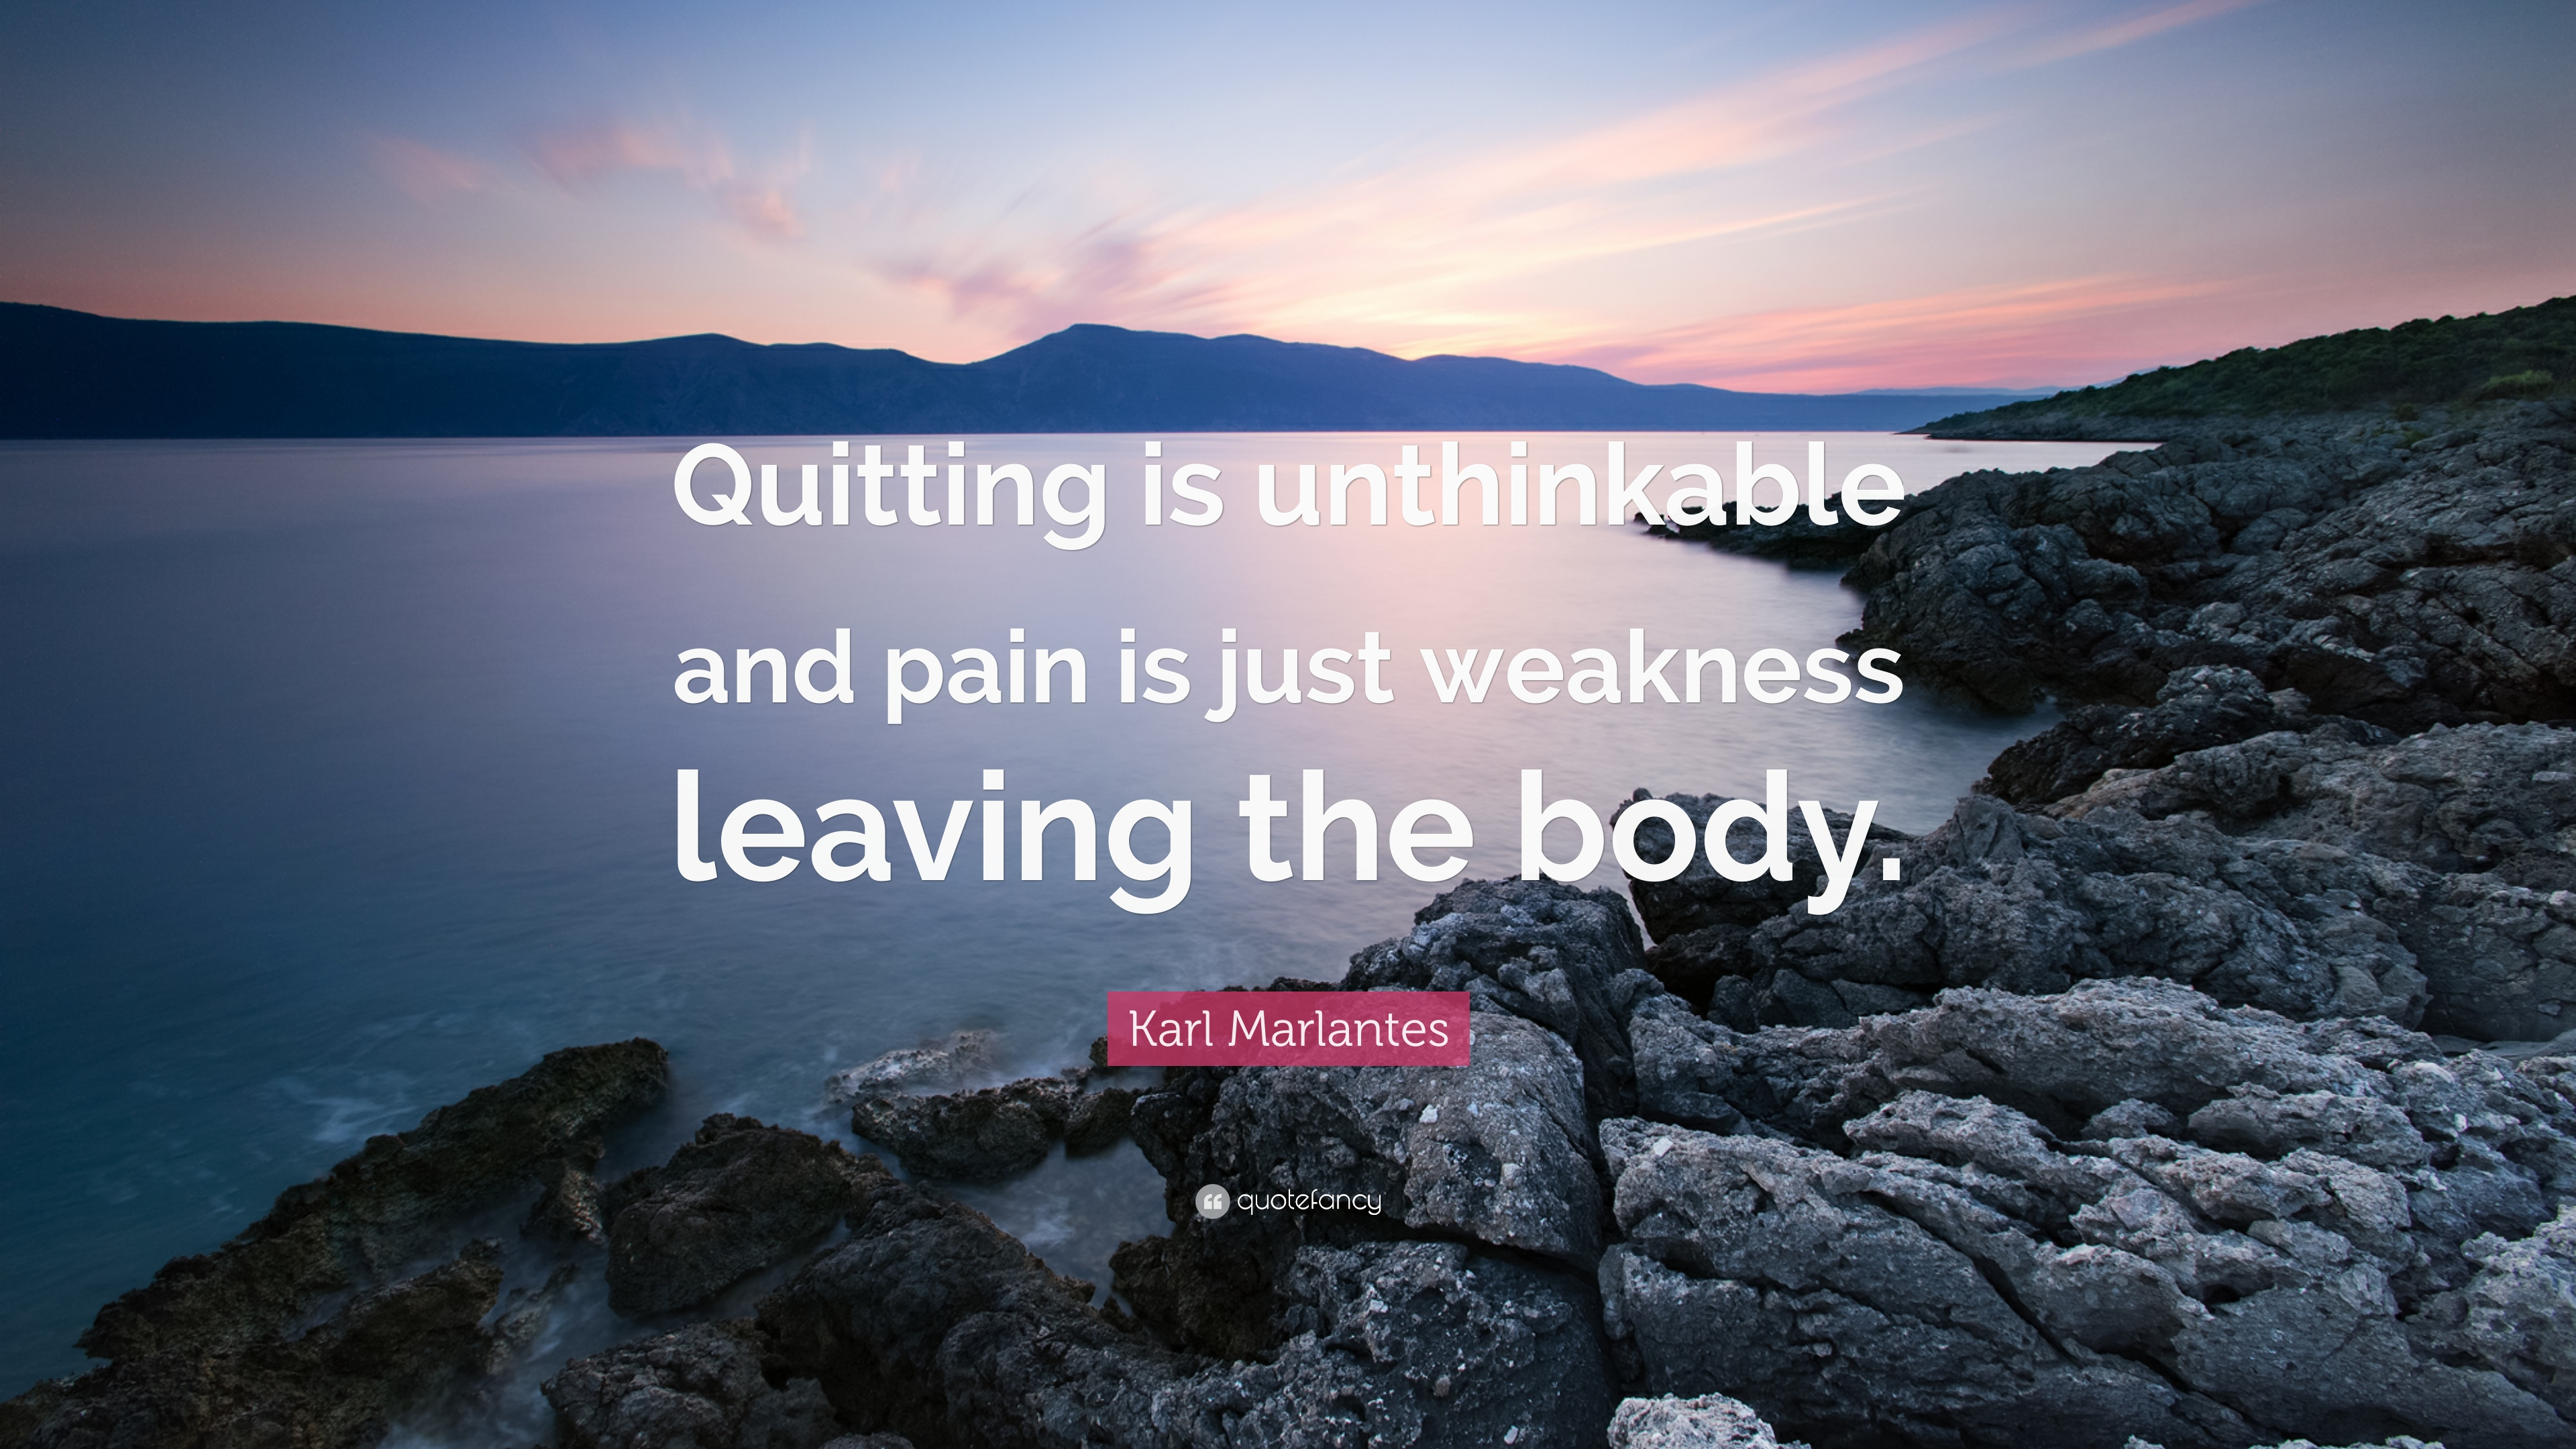 Karl Marlantes Quote Quitting Is Unthinkable And Pain Is Just